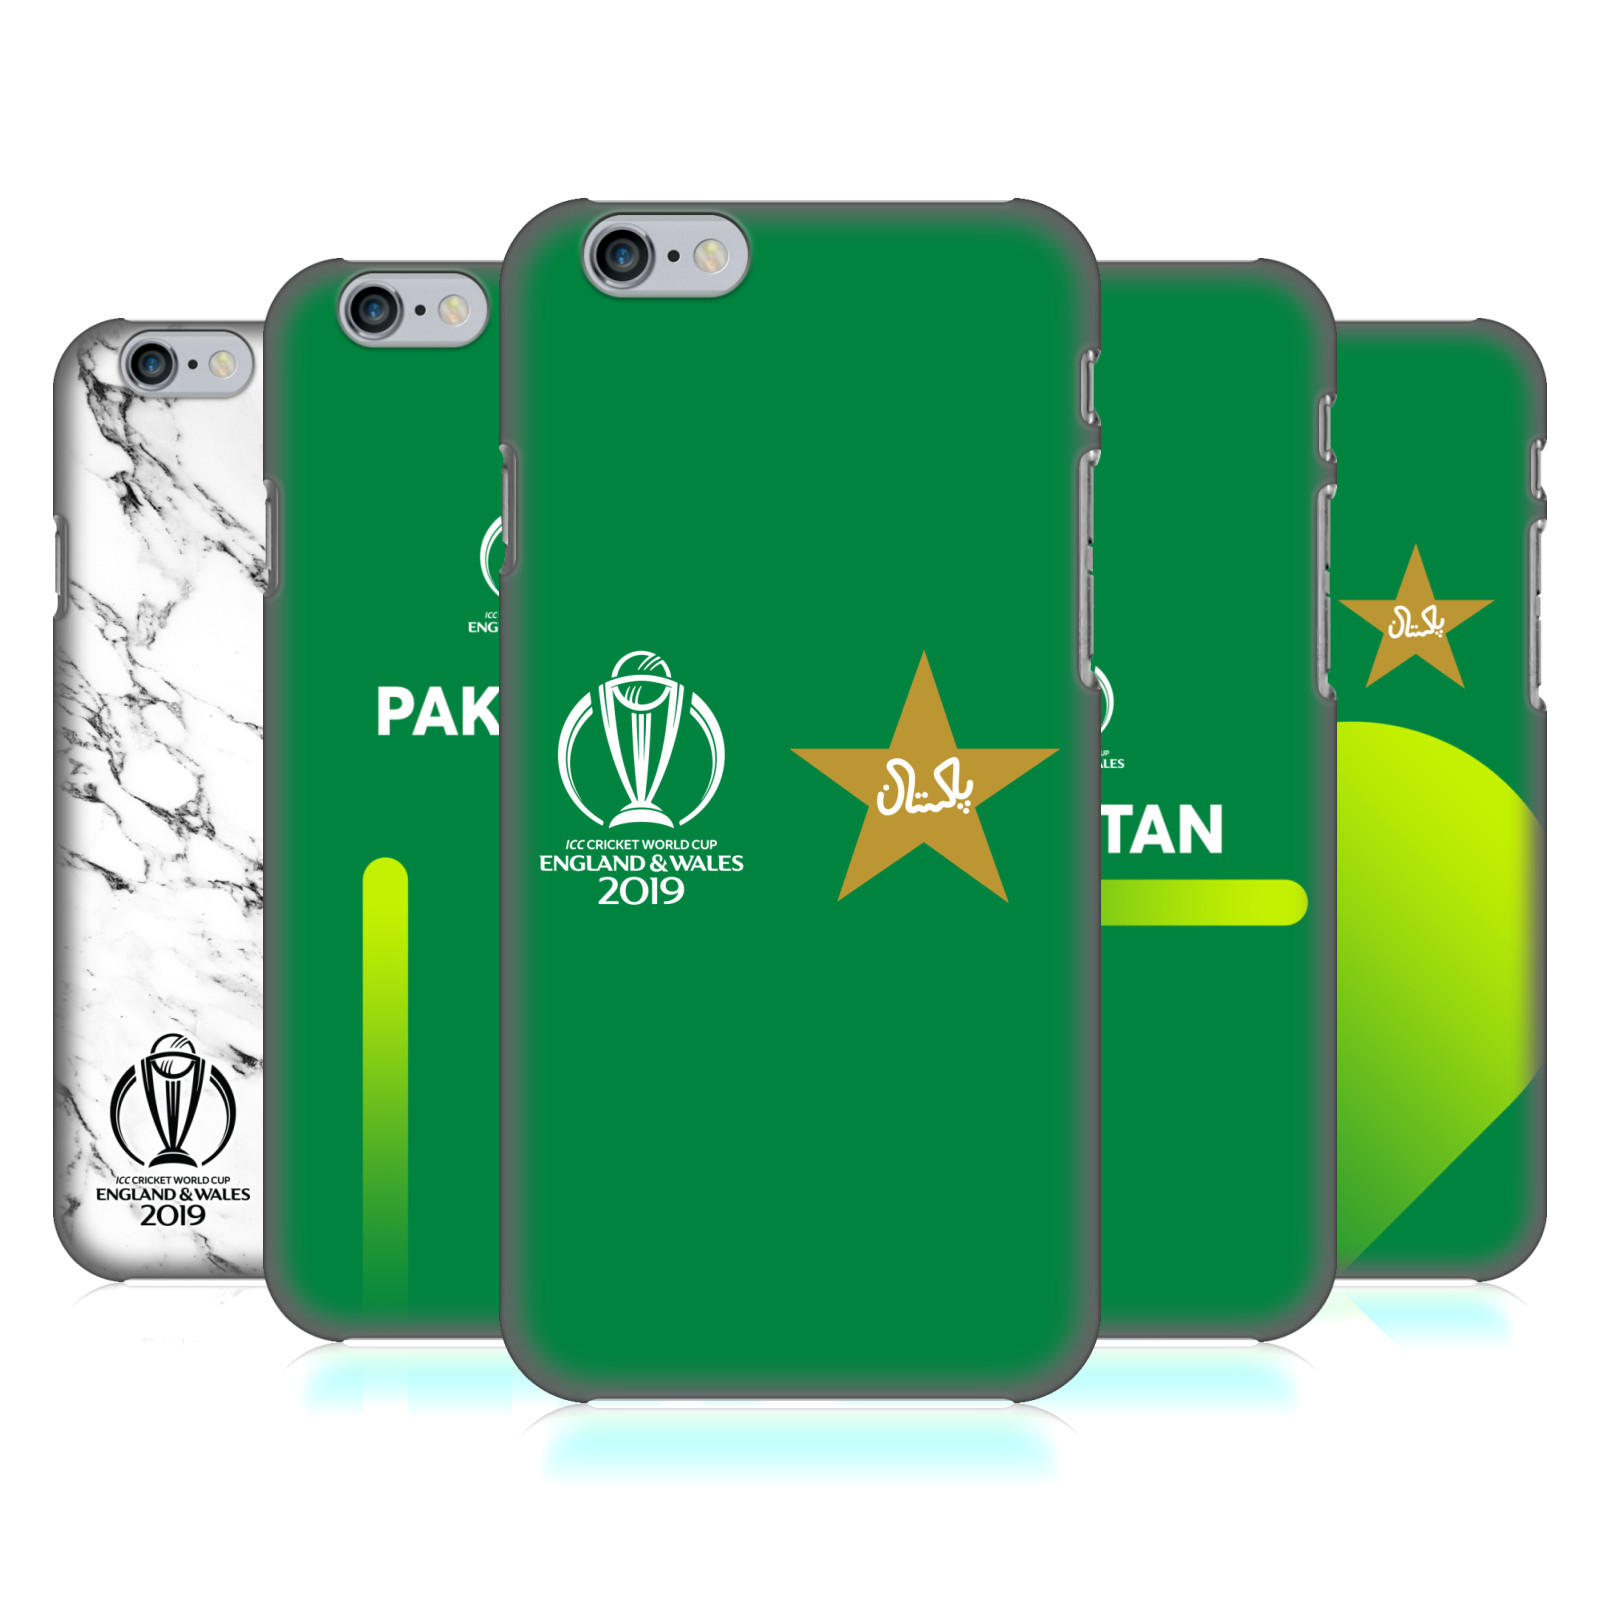 ICC Pakistan Phone and Tablet cases